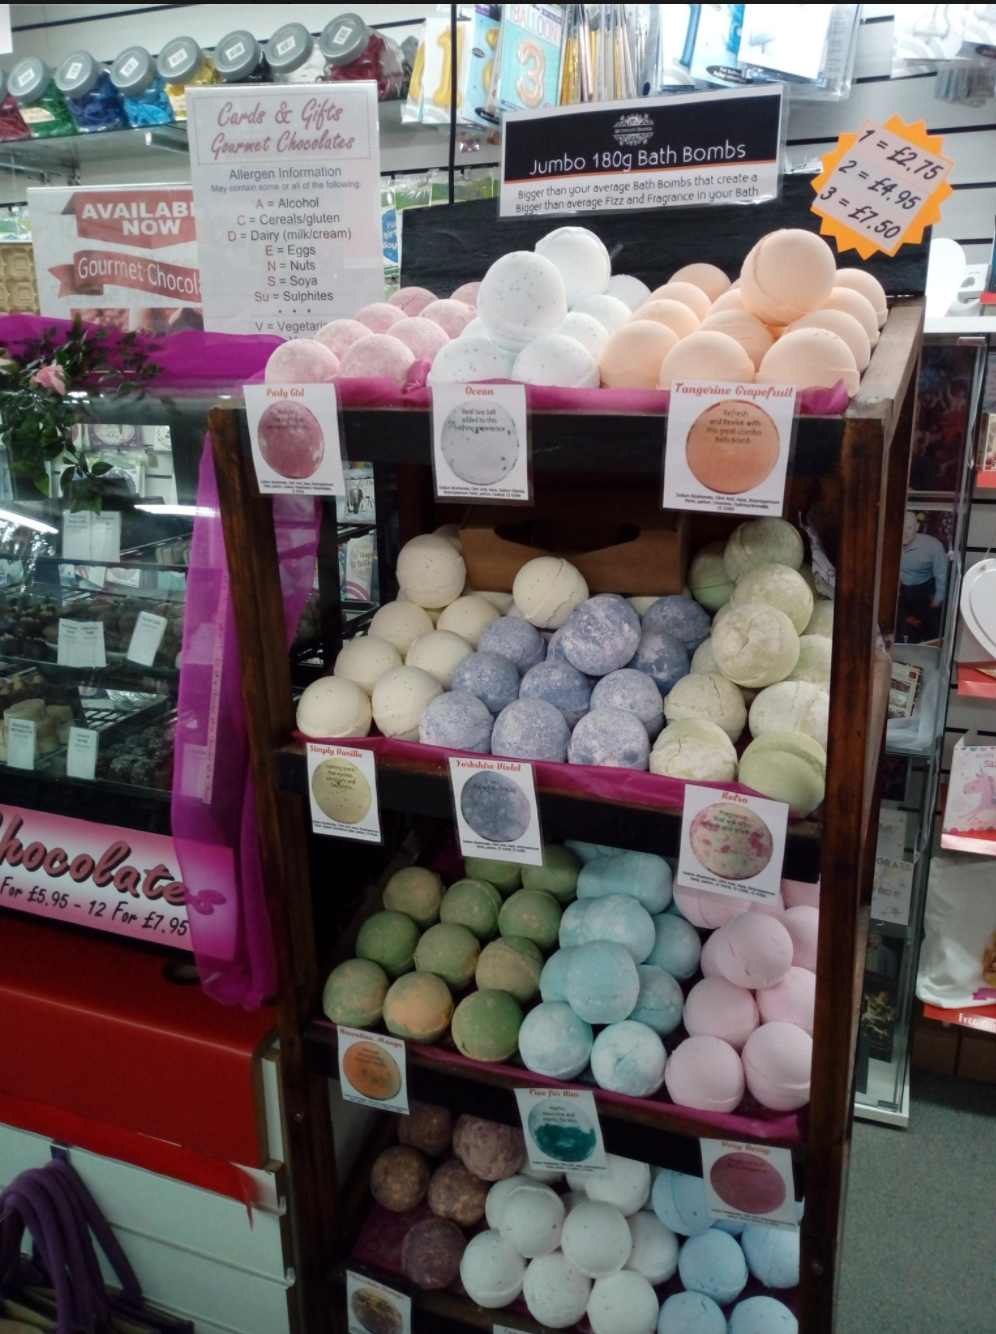 Above: These bath bombs are going down a…bomb!